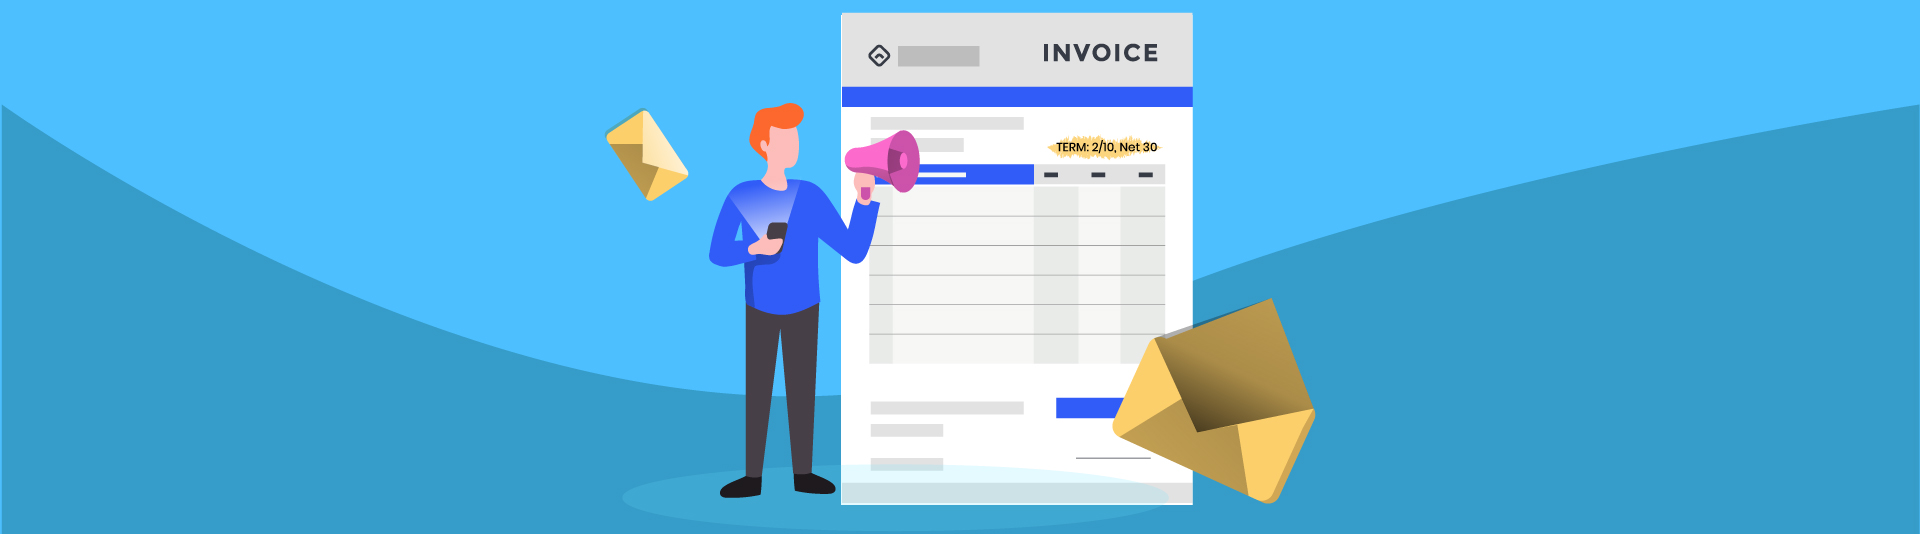 What Does Net 30 Mean on an Invoice